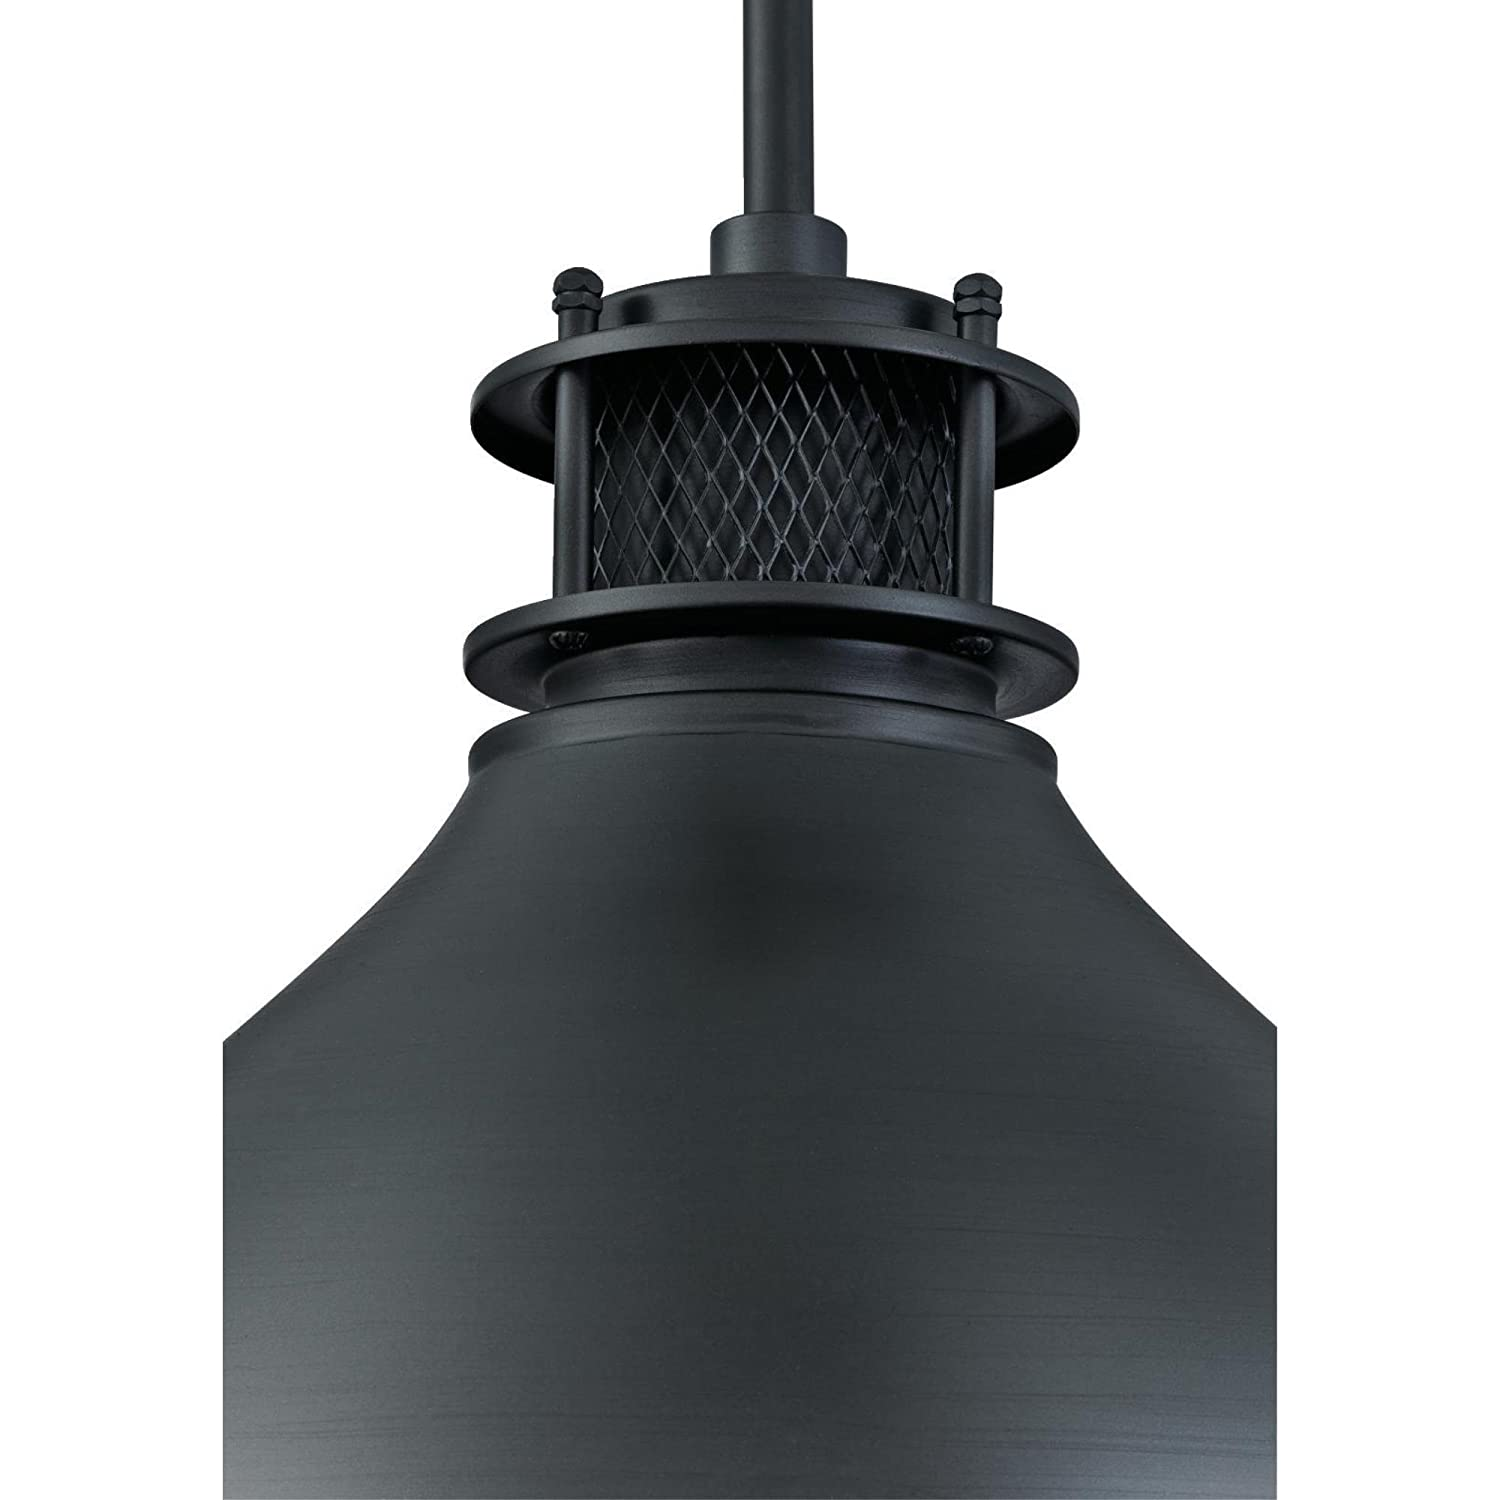 Westinghouse Lighting 6326800 One-Light Indoor Pendant, Matte Brushed Gun Metal Finish with Mesh Detail, Gunmetal